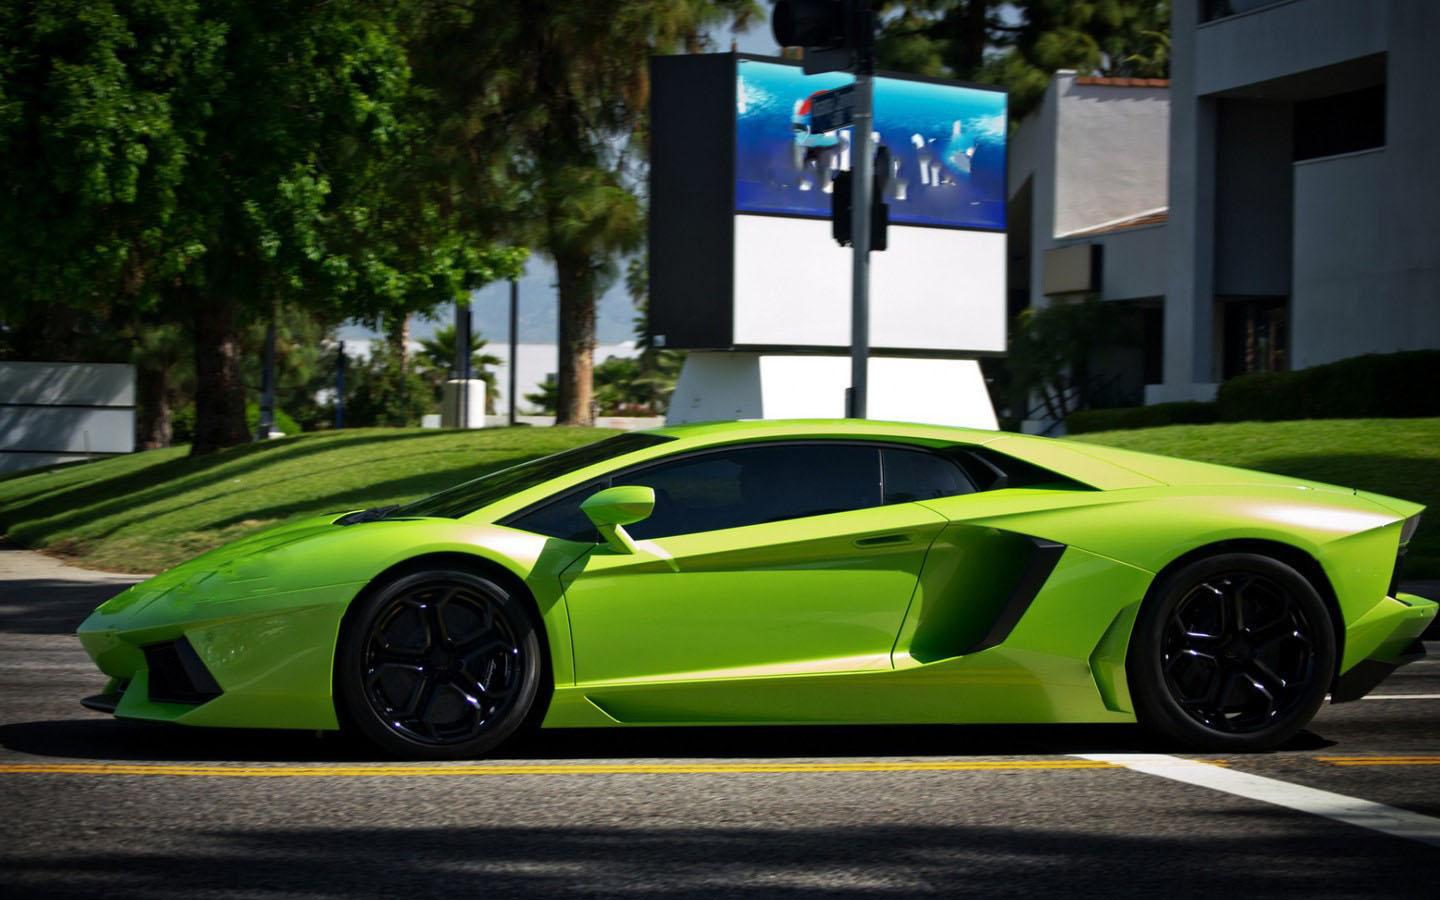 Sports Car Wallpaper  Android Apps on Google Play